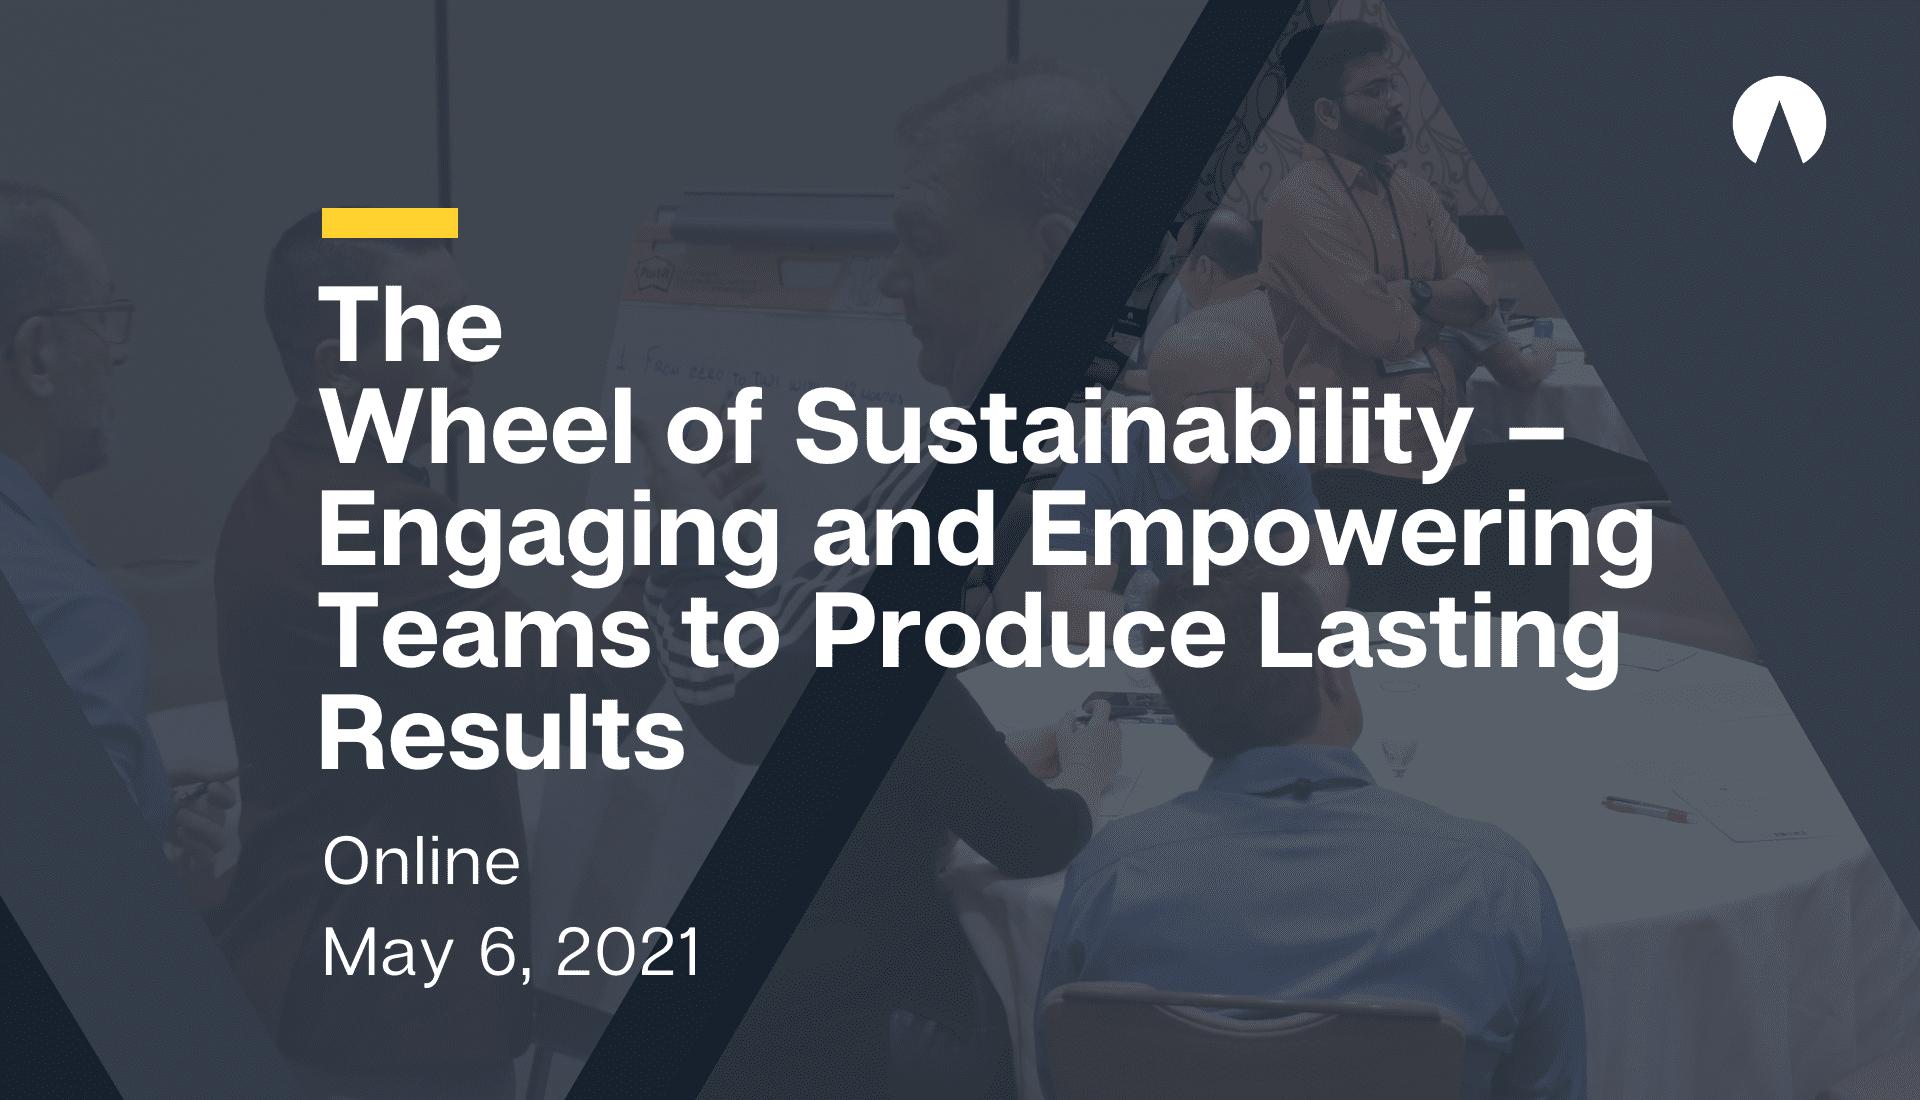 The Wheel of Sustainability – Engaging and Empowering Teams to Produce Lasting Results